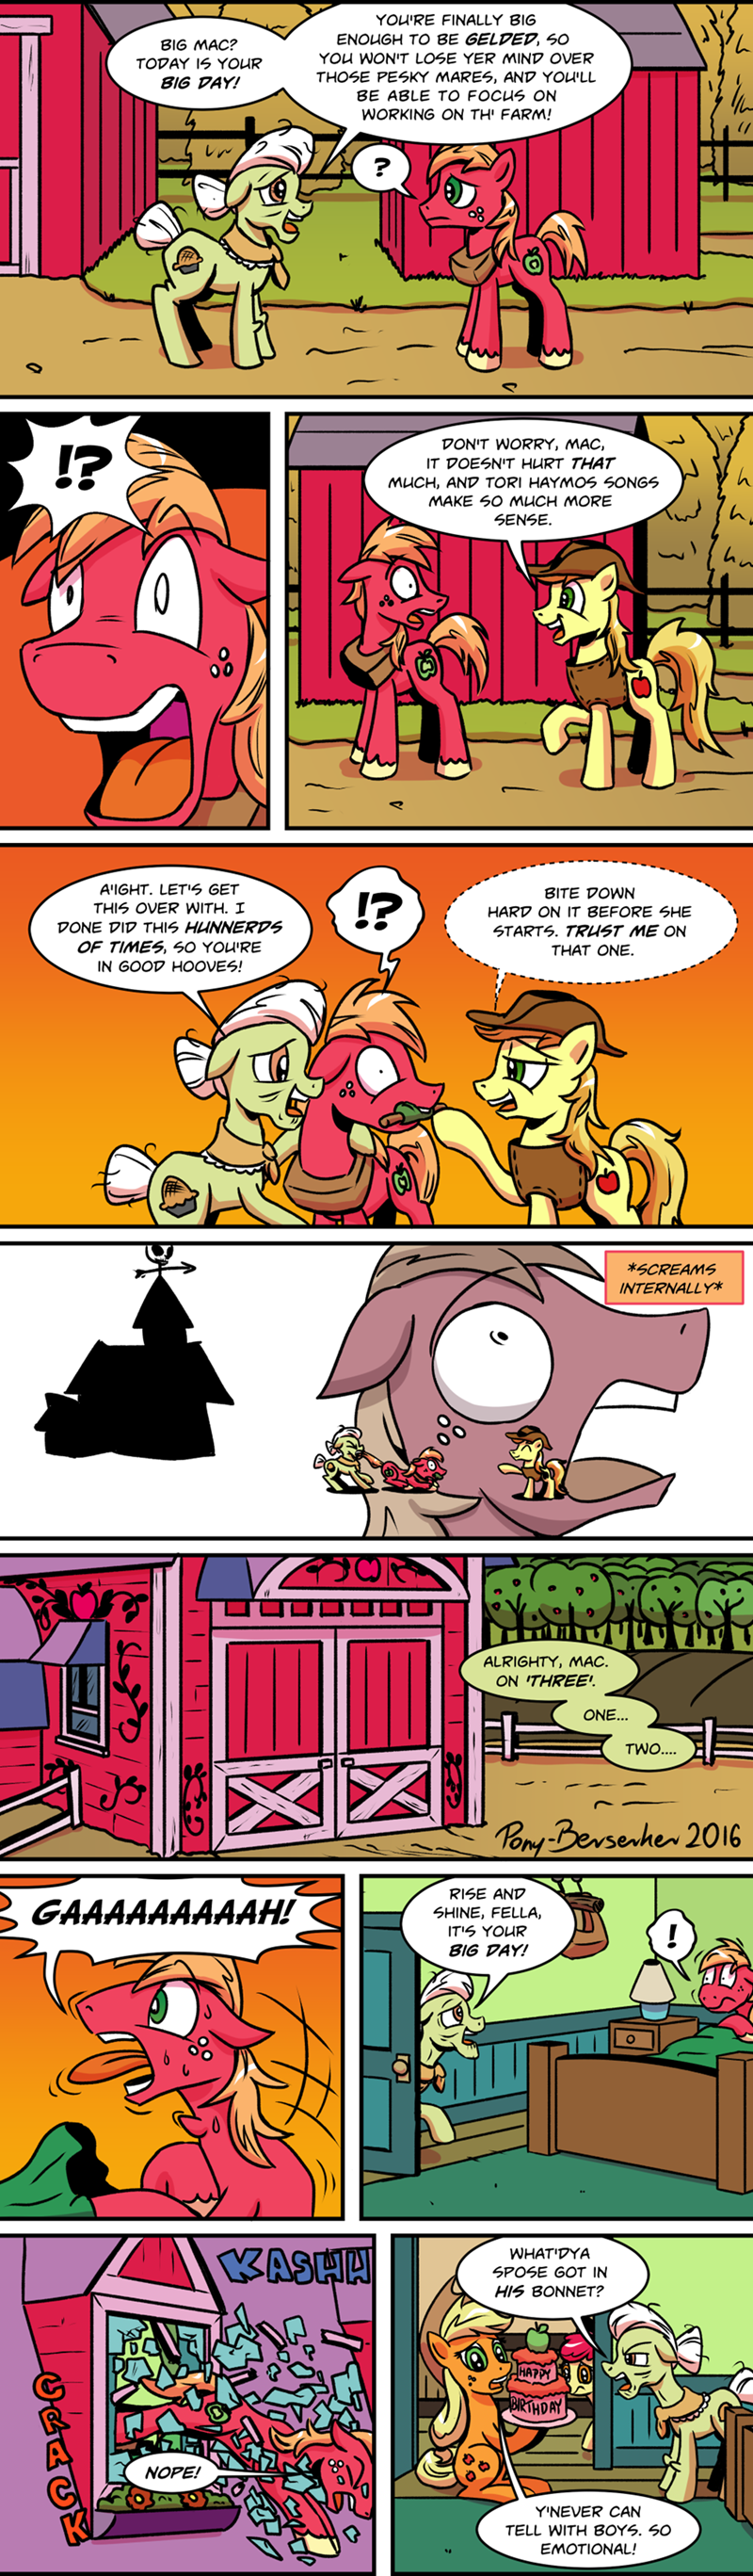 applejack braeburn apple bloom Big Macintosh granny smith comic - 8760224768